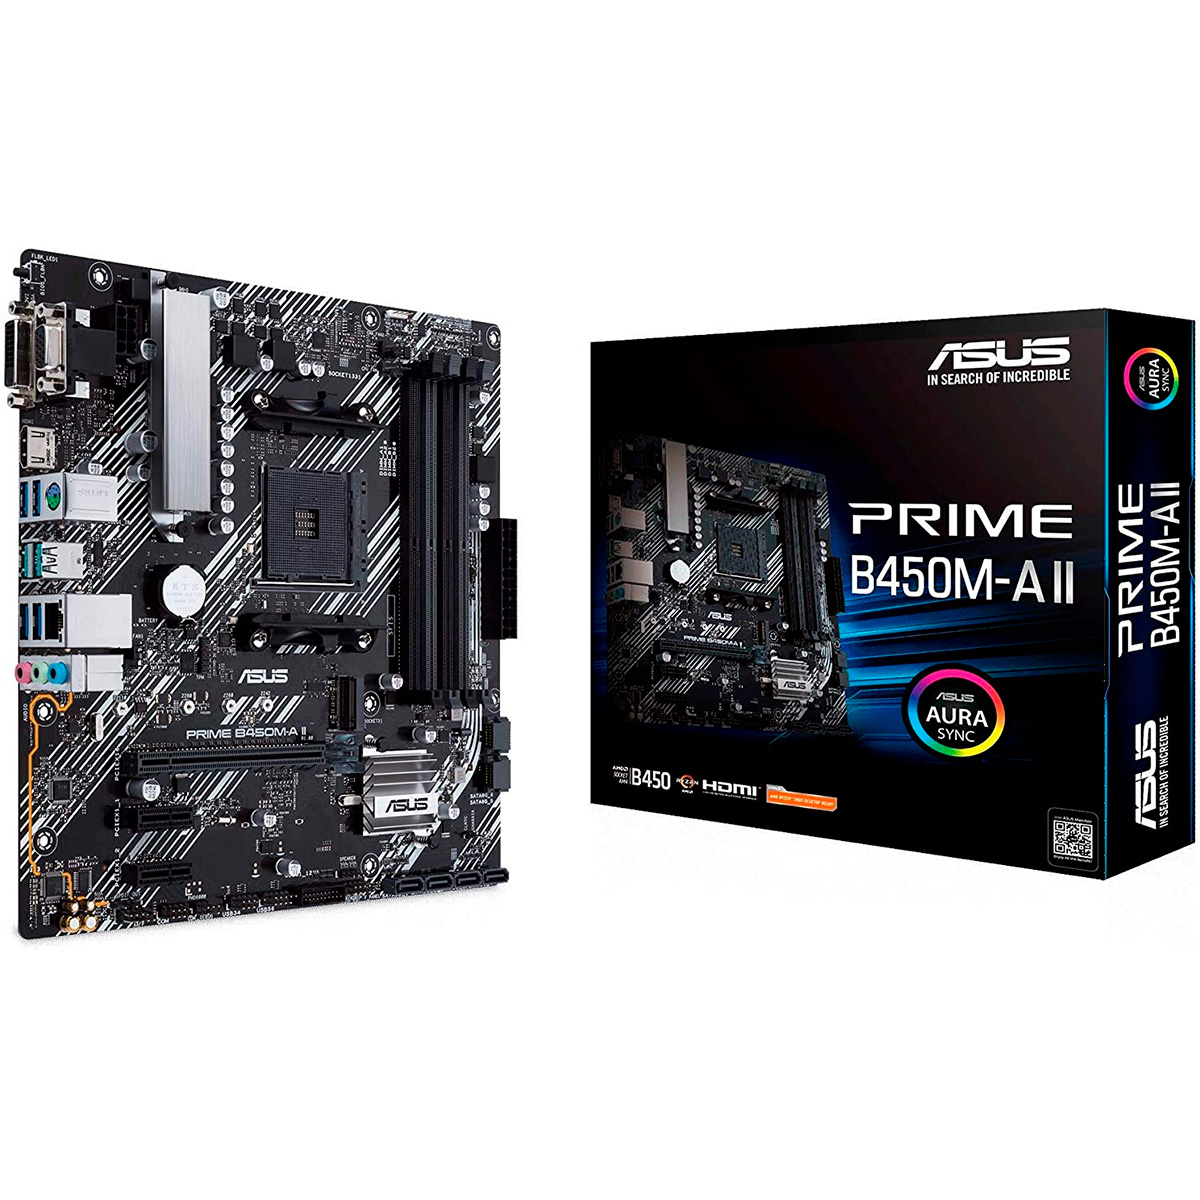 MOTHER B450M-A II PRIME ASUS AM4